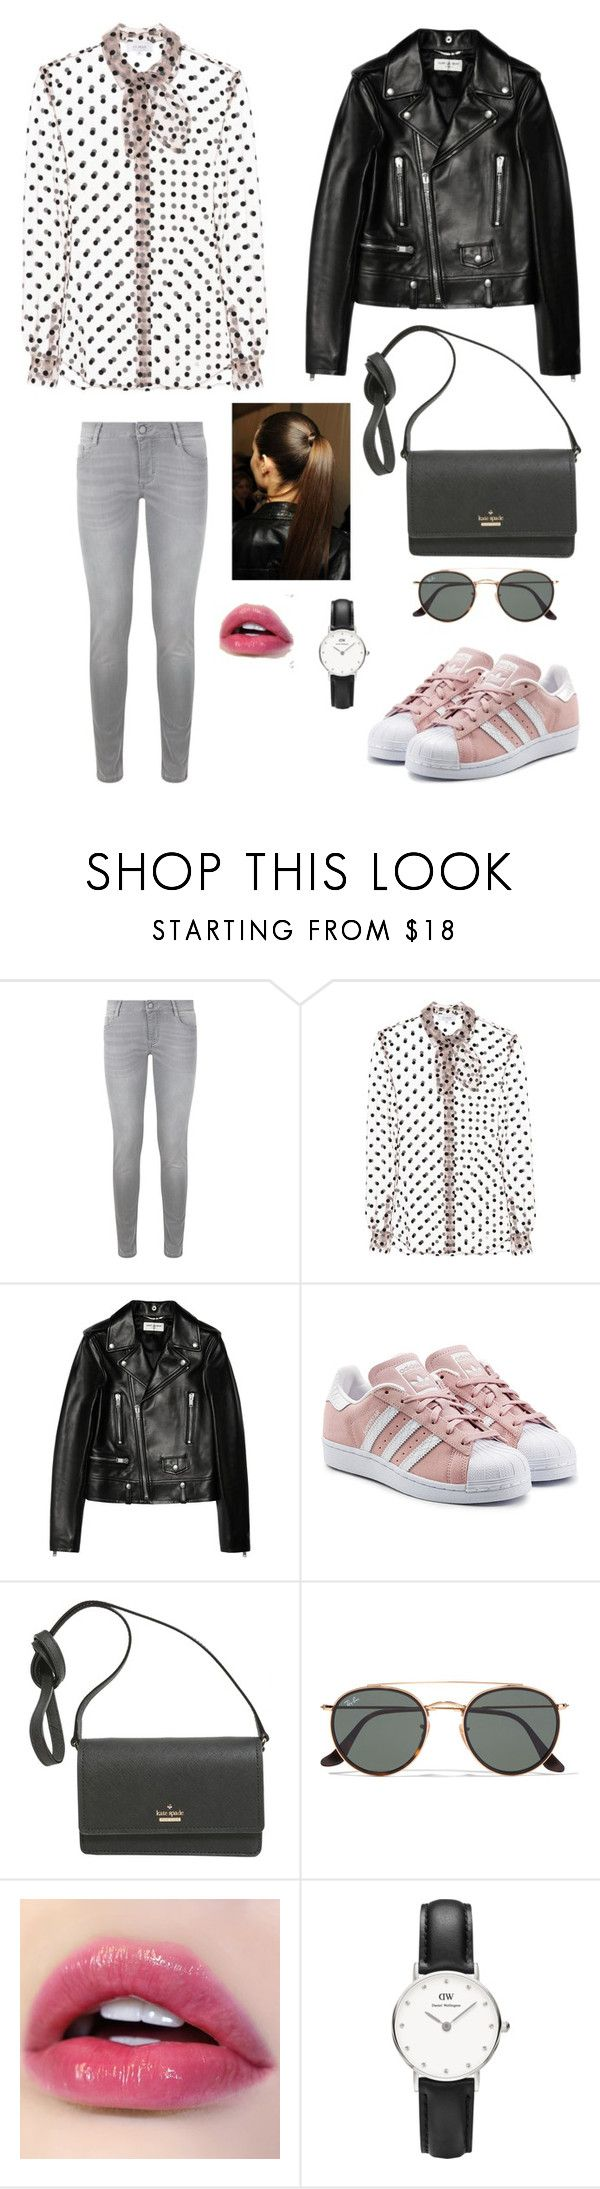 """Classique look"" by andreallaustin ❤ liked on Polyvore featuring Maje, Isa Arfen, Yves Saint Laurent, adidas Originals, Kate Spade, Ray-Ban and Daniel Wellington"